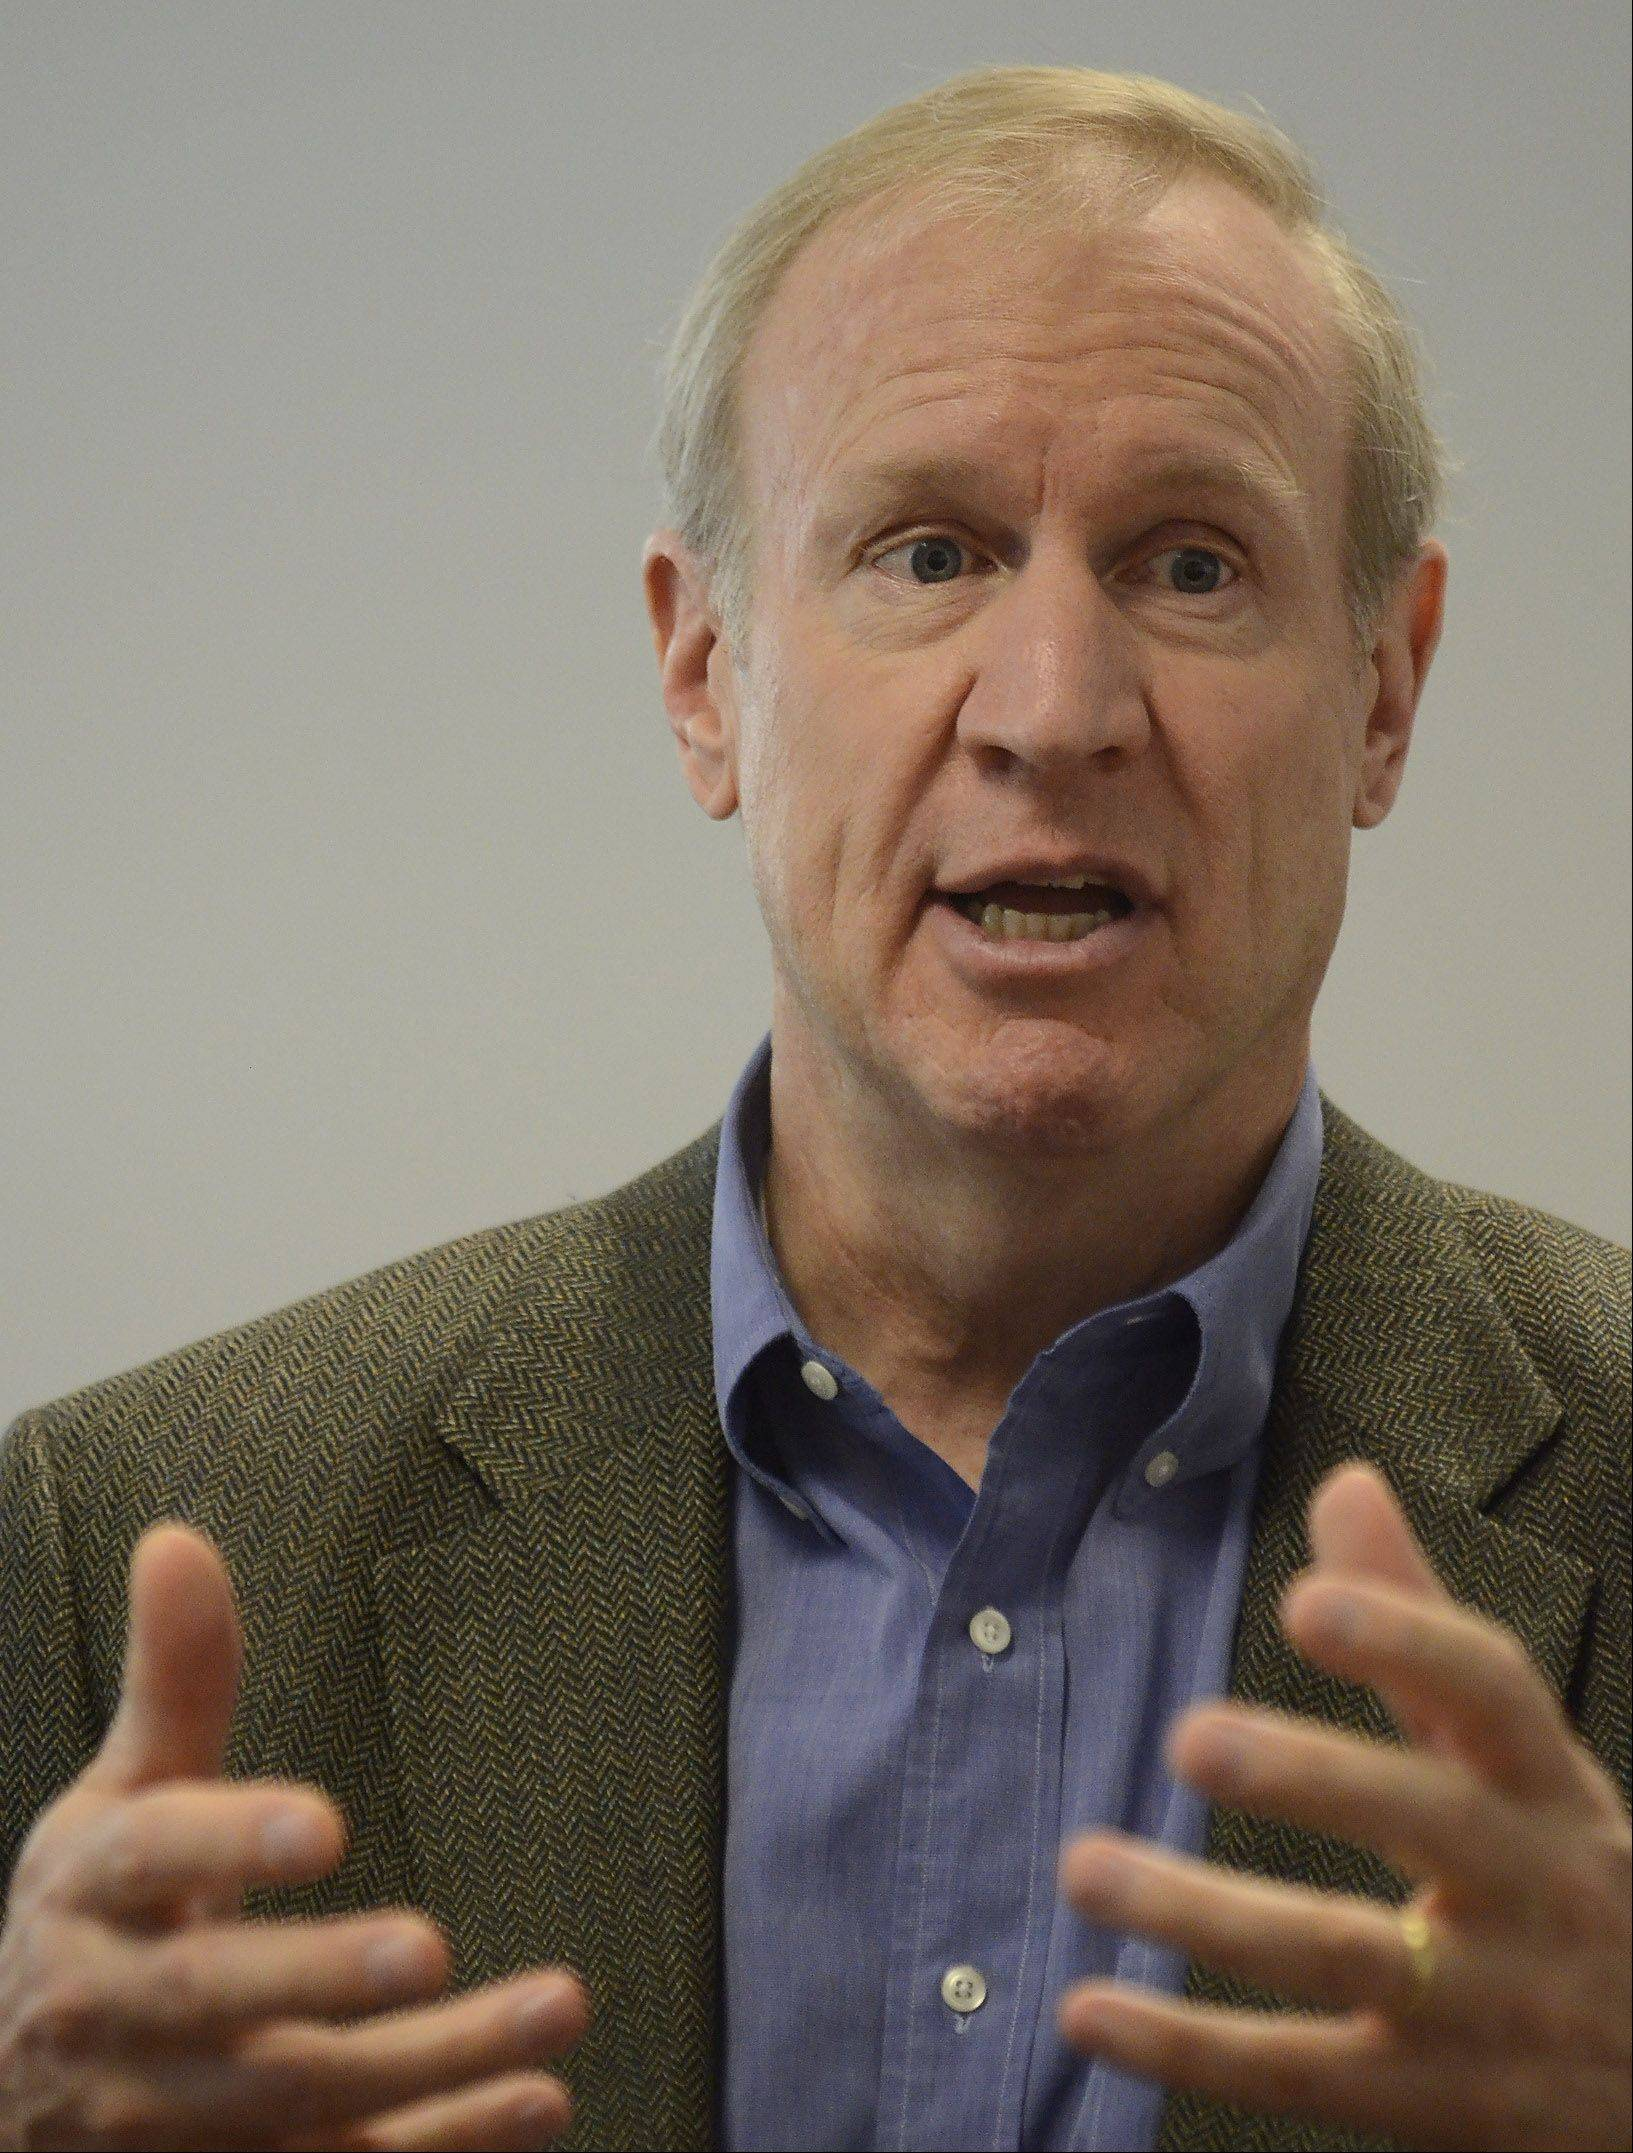 Potential GOP gubernatorial candidate Bruce Rauner sits down with the Daily Herald about exploring a bid.